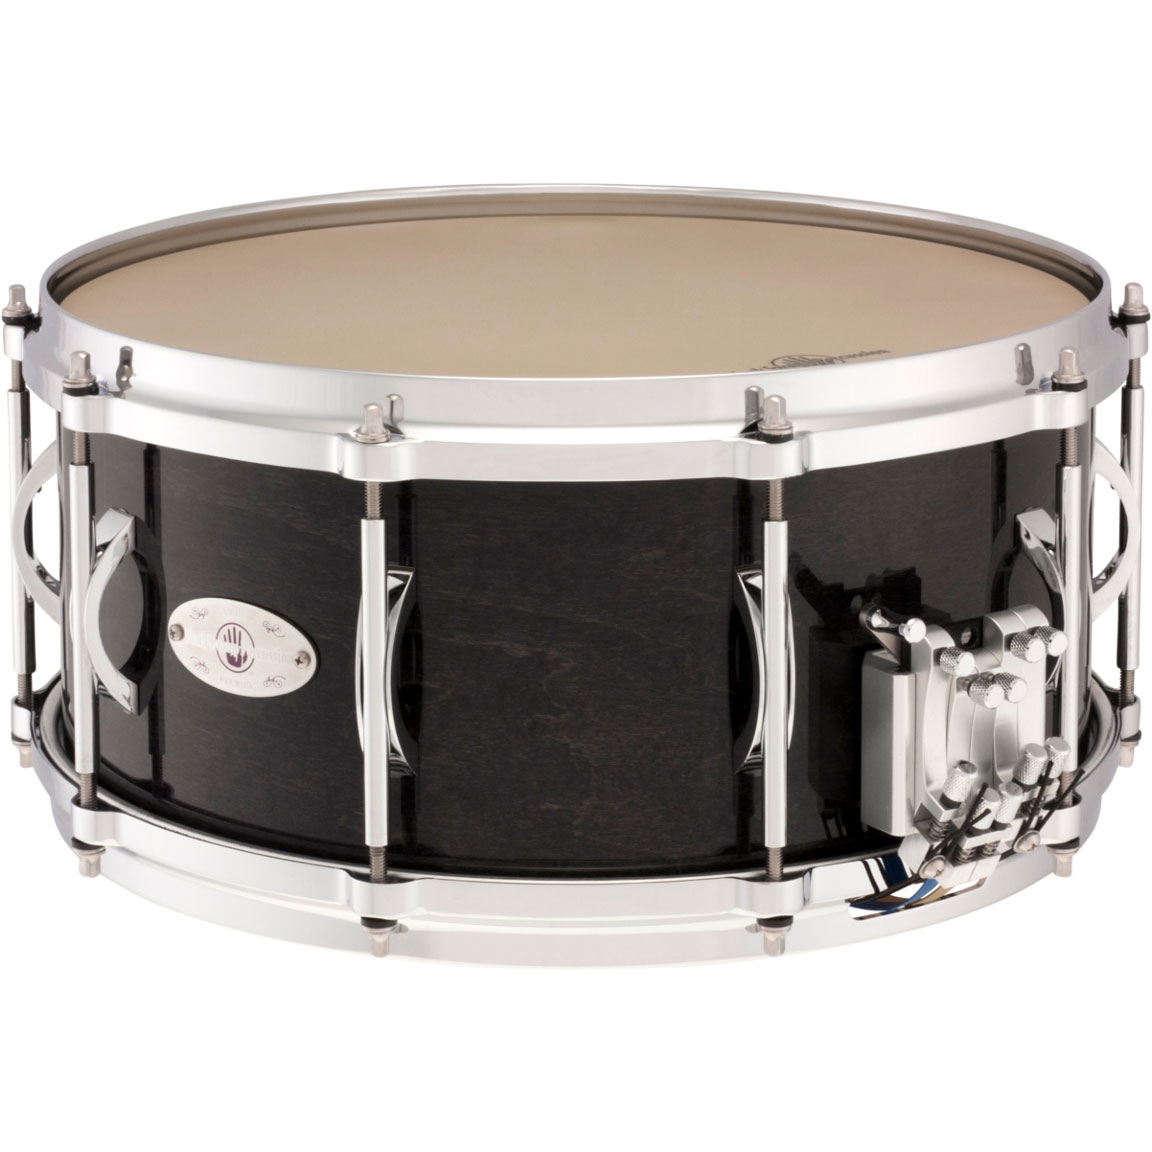 "Black Swamp 6.5"" x 14"" Multisonic Maple Concert Snare Drum with Die-Cast Hoops"